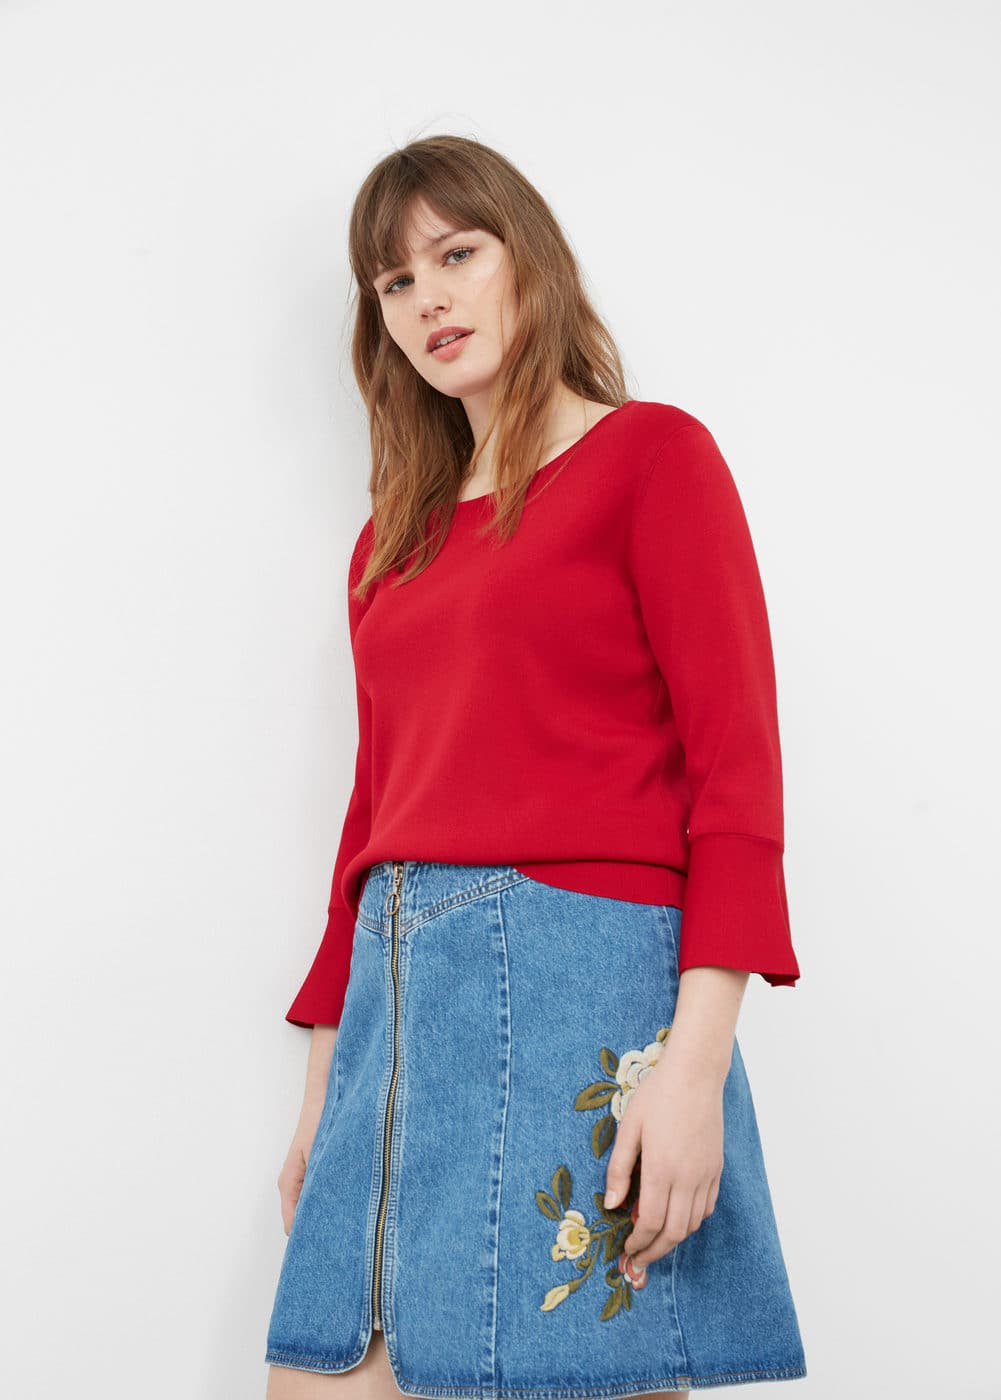 Embroidered denim skirt | VIOLETA BY MANGO